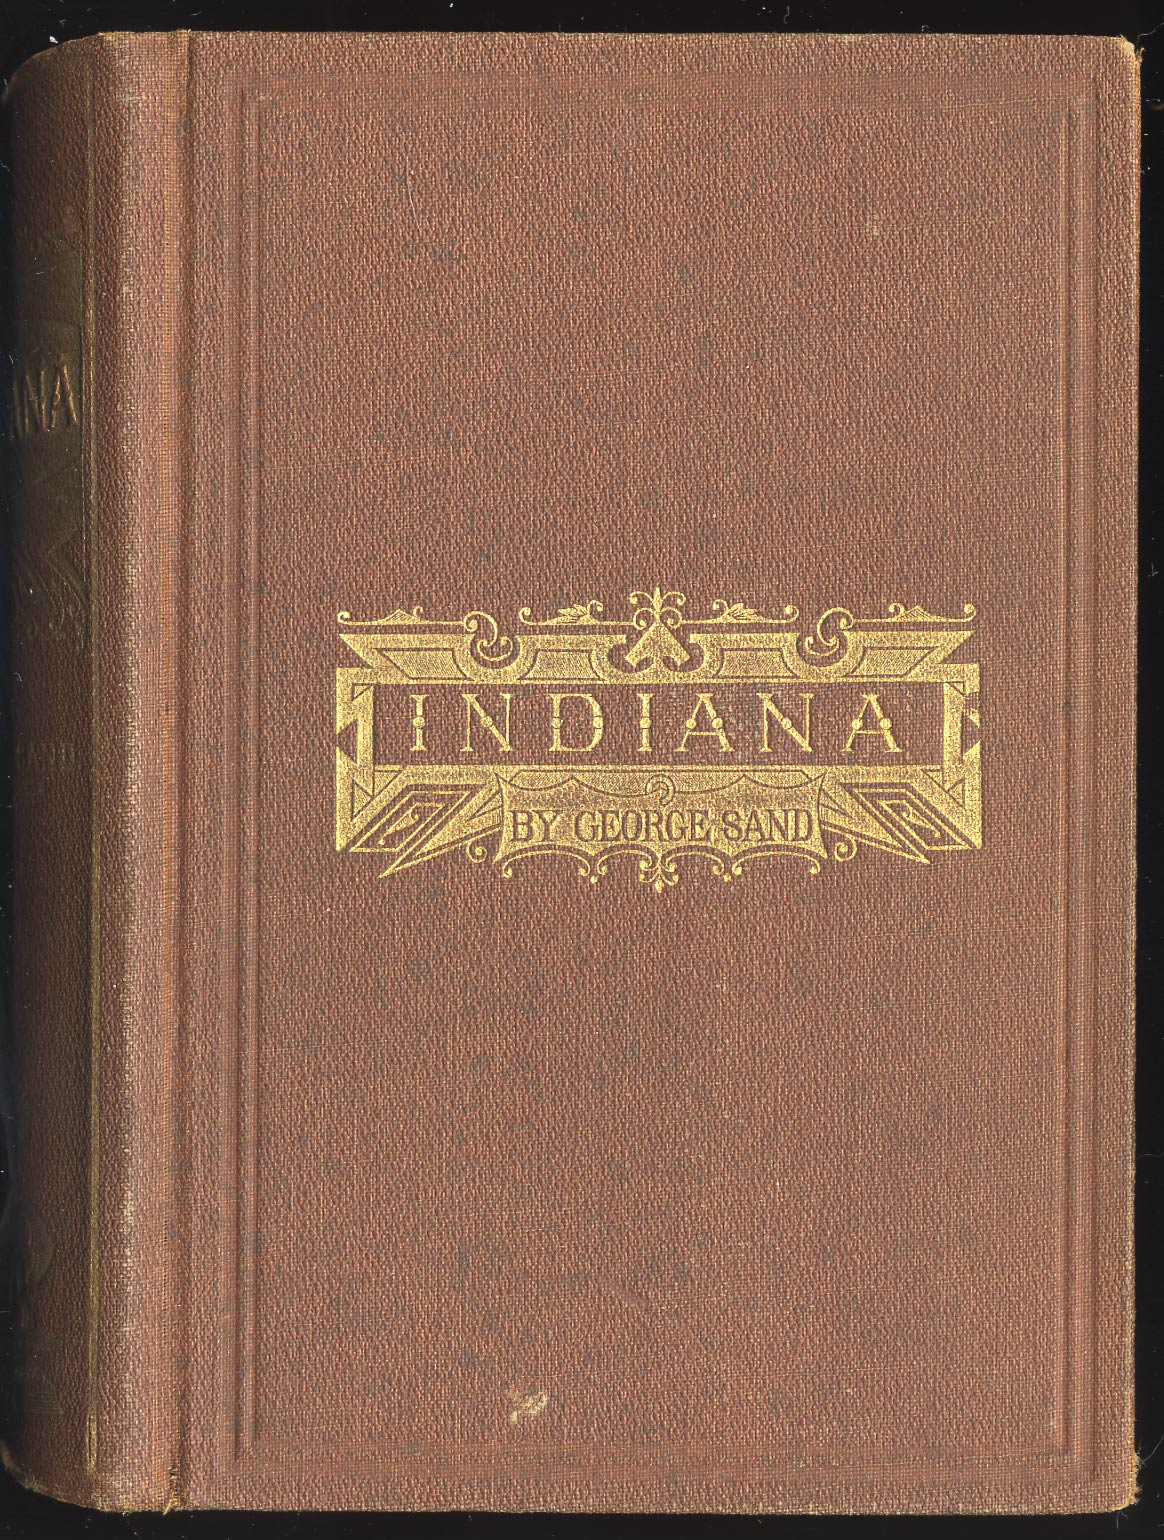 Writing Fiction Indiana (novel) - Wikipedia